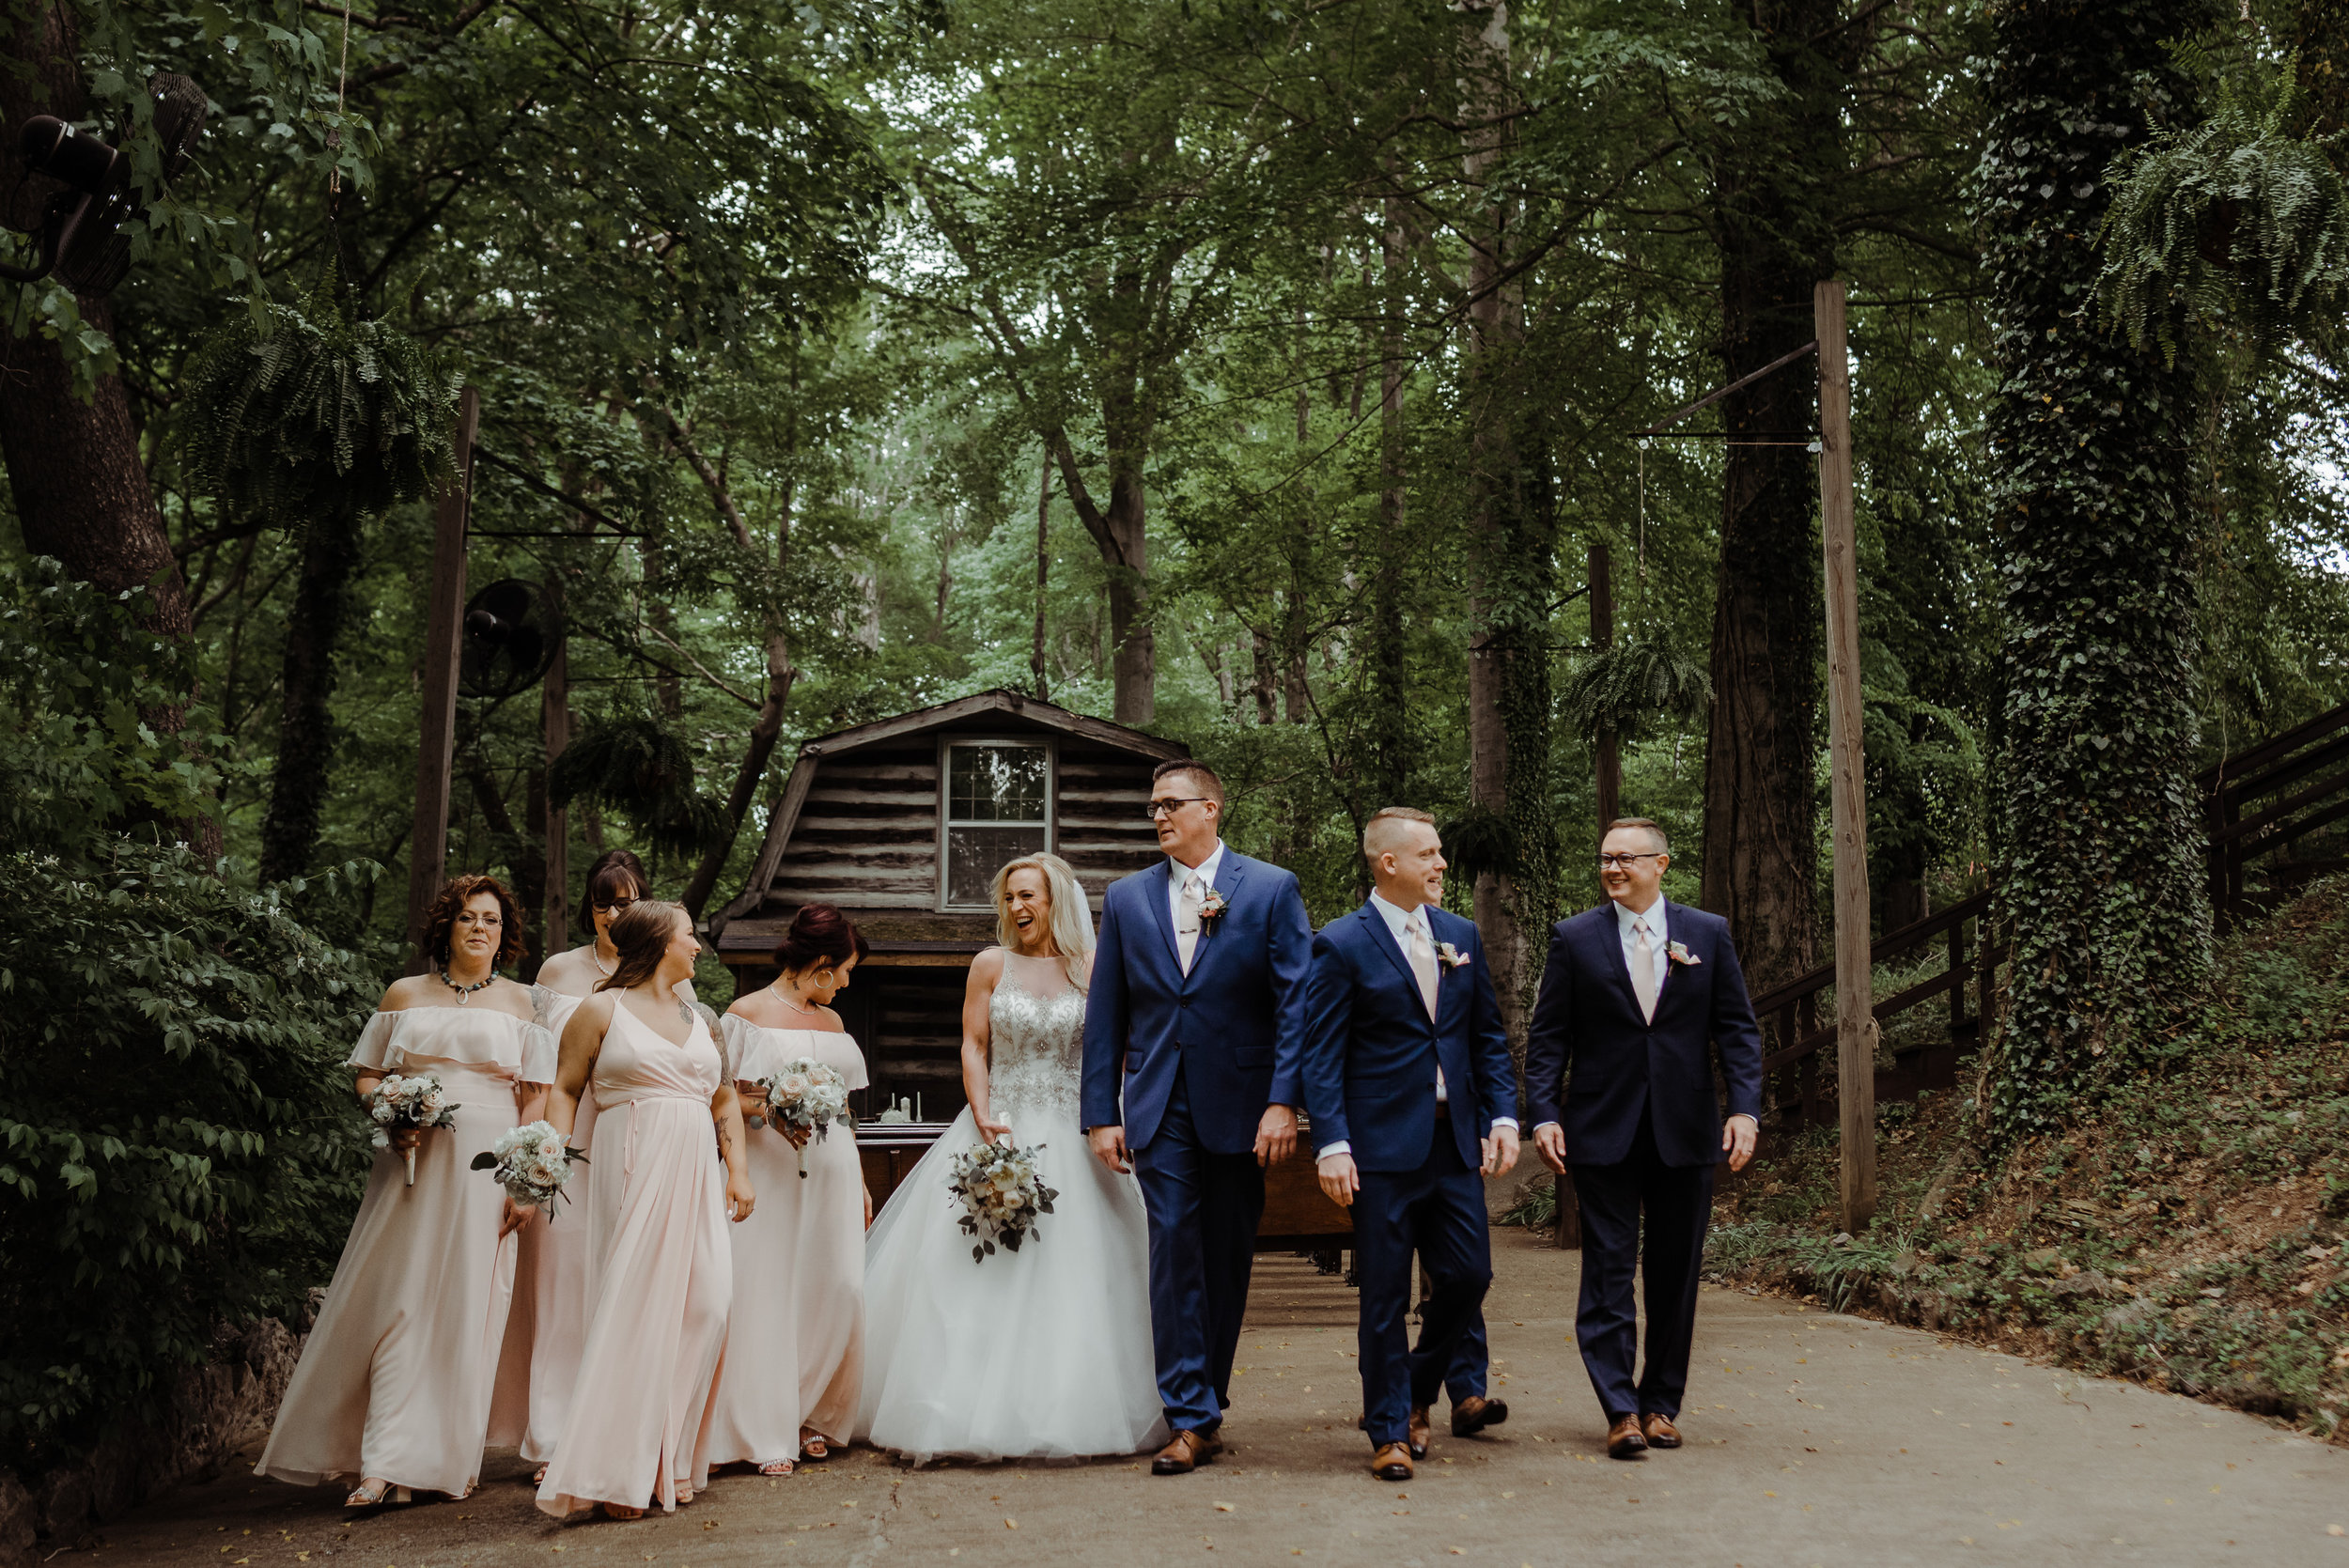 amanda and mike tennessee wedding at tanglewood house by wilde company-22.jpg